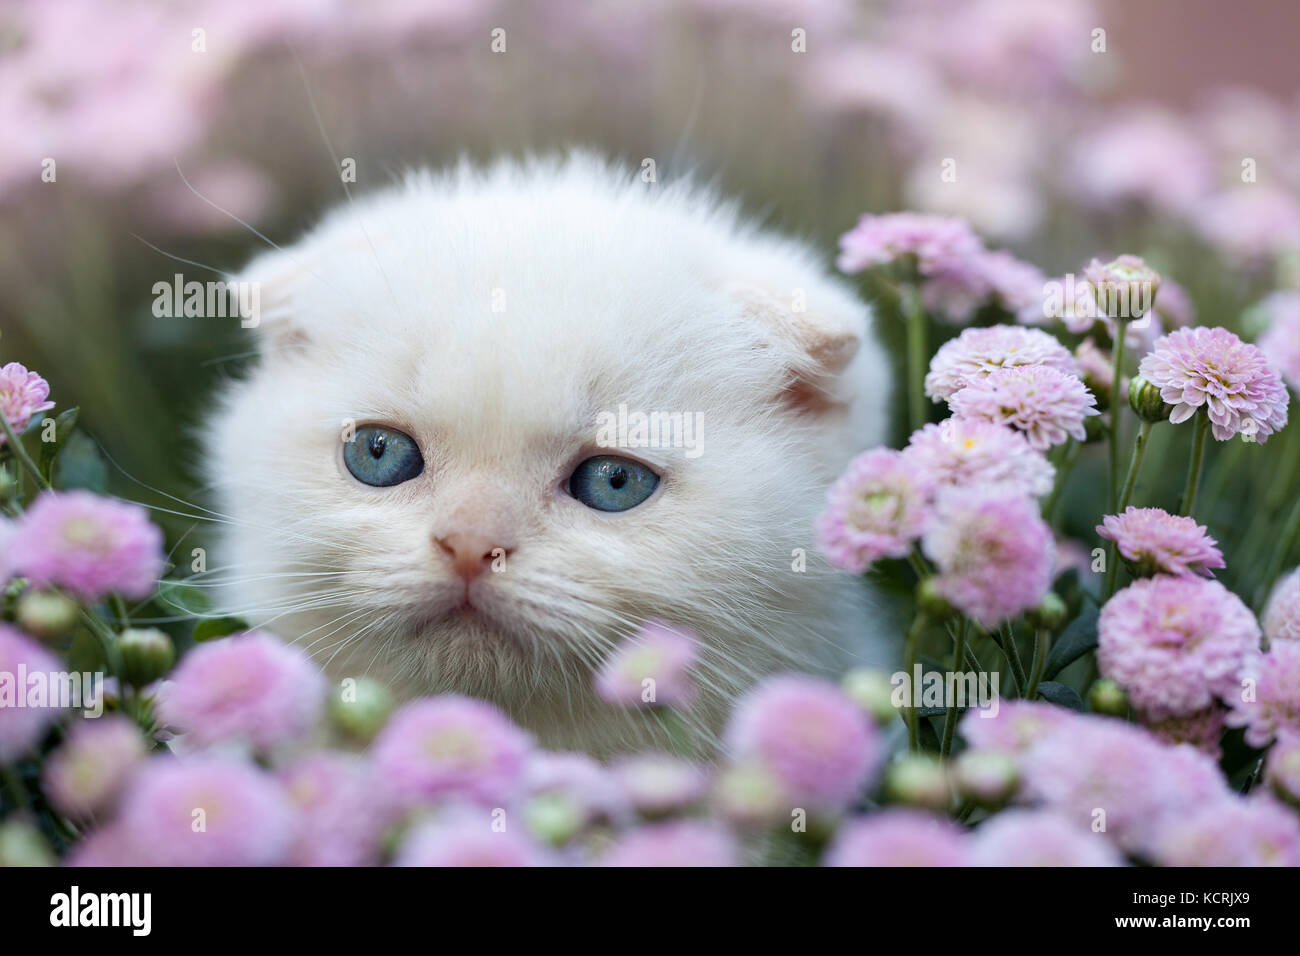 White Cat In The Garden With Yellow Flowers Stock Photos